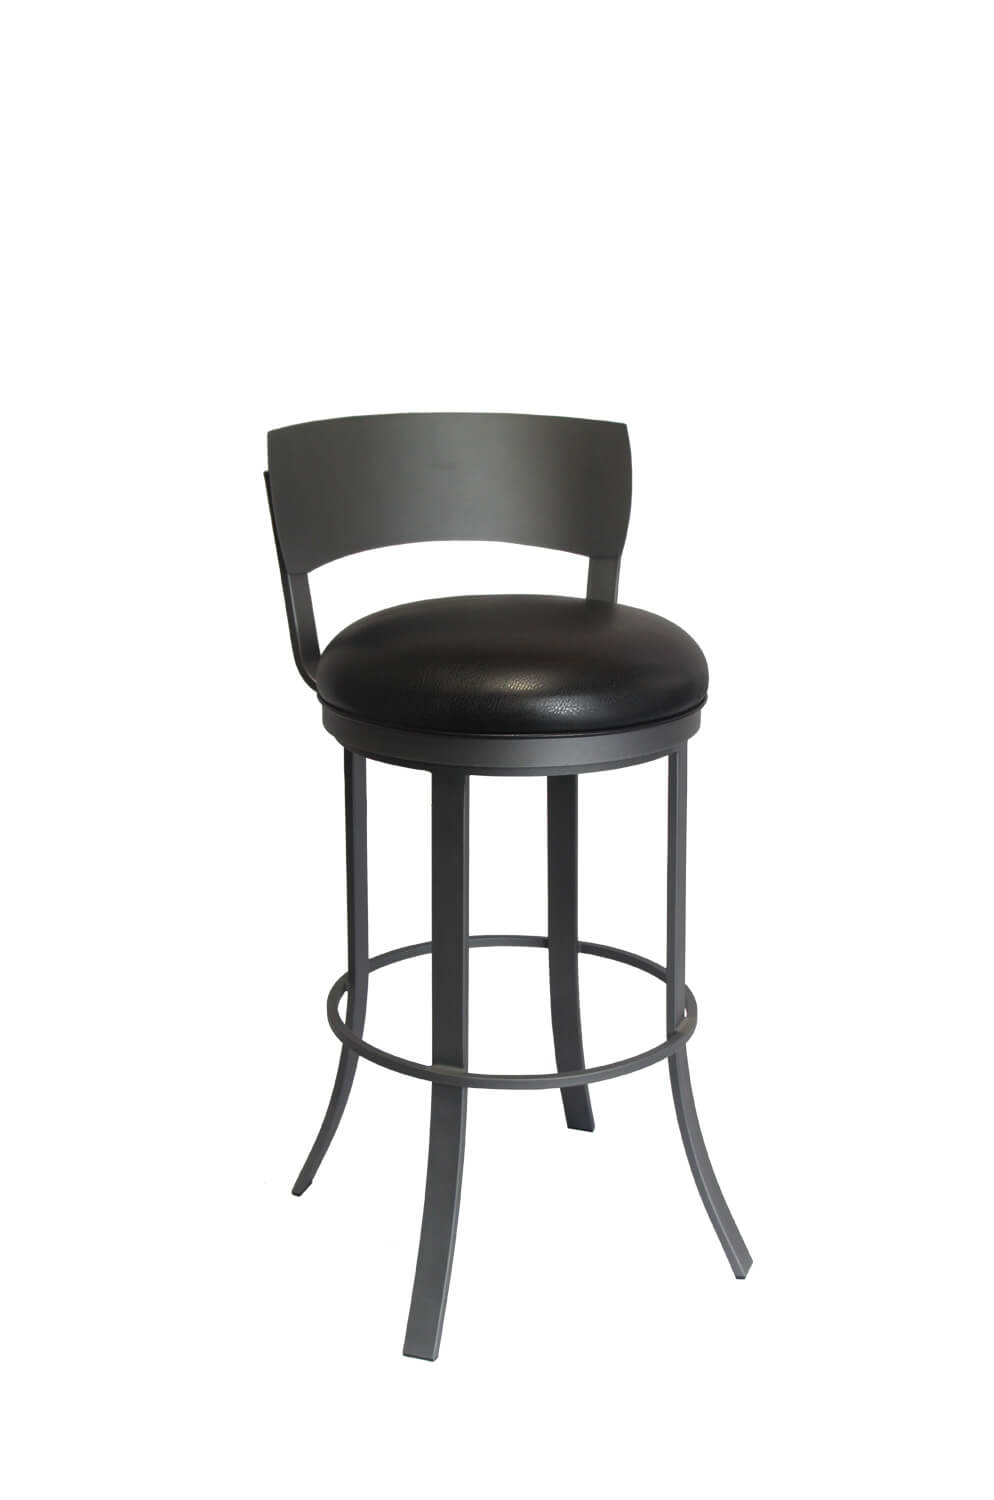 new arrival 025d1 6c8eb Bailey Black Swivel Bar Stool with Low Metal Back - Quick Ship